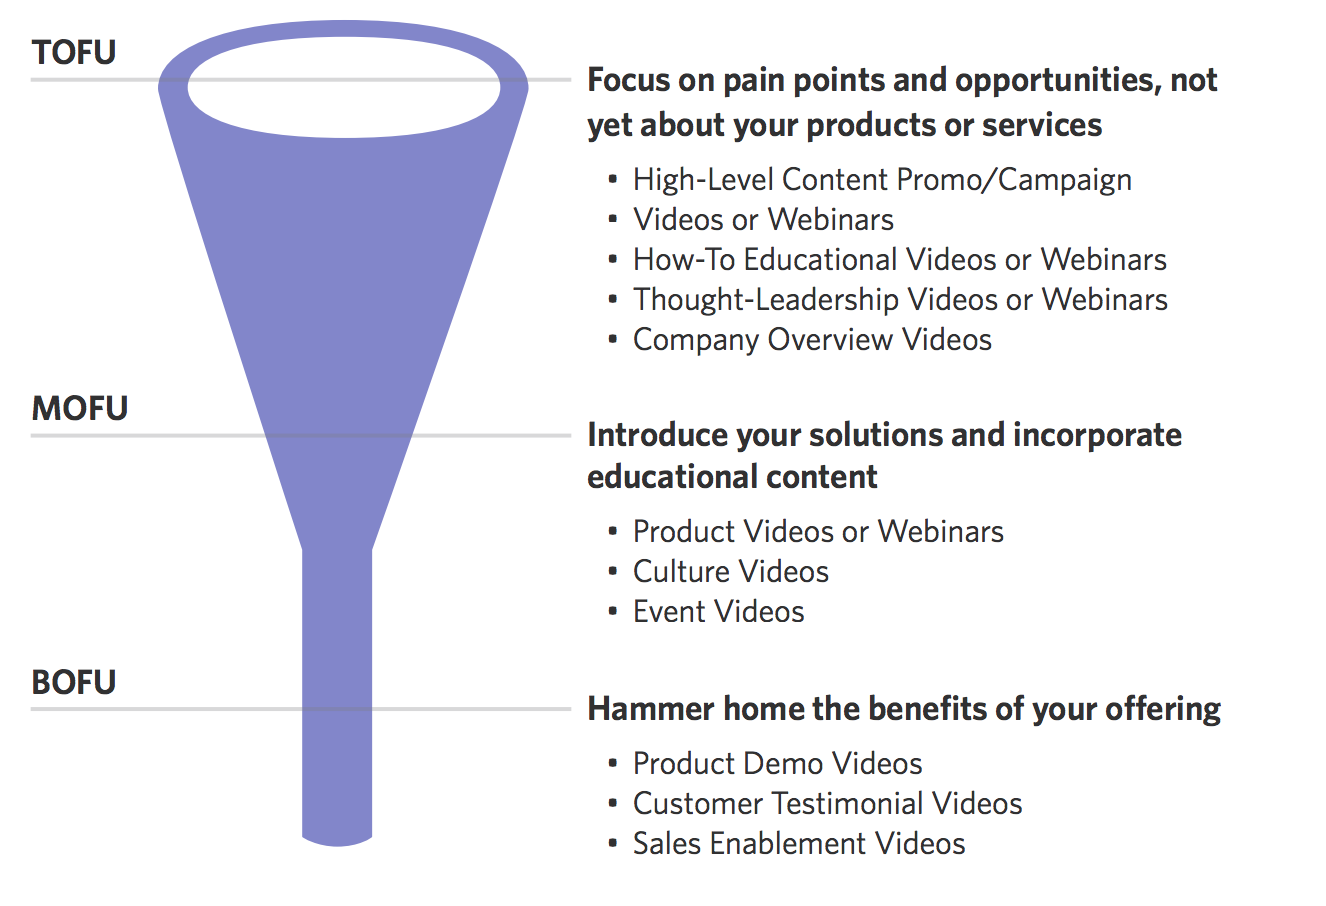 Video types at each stage of the buyer journey